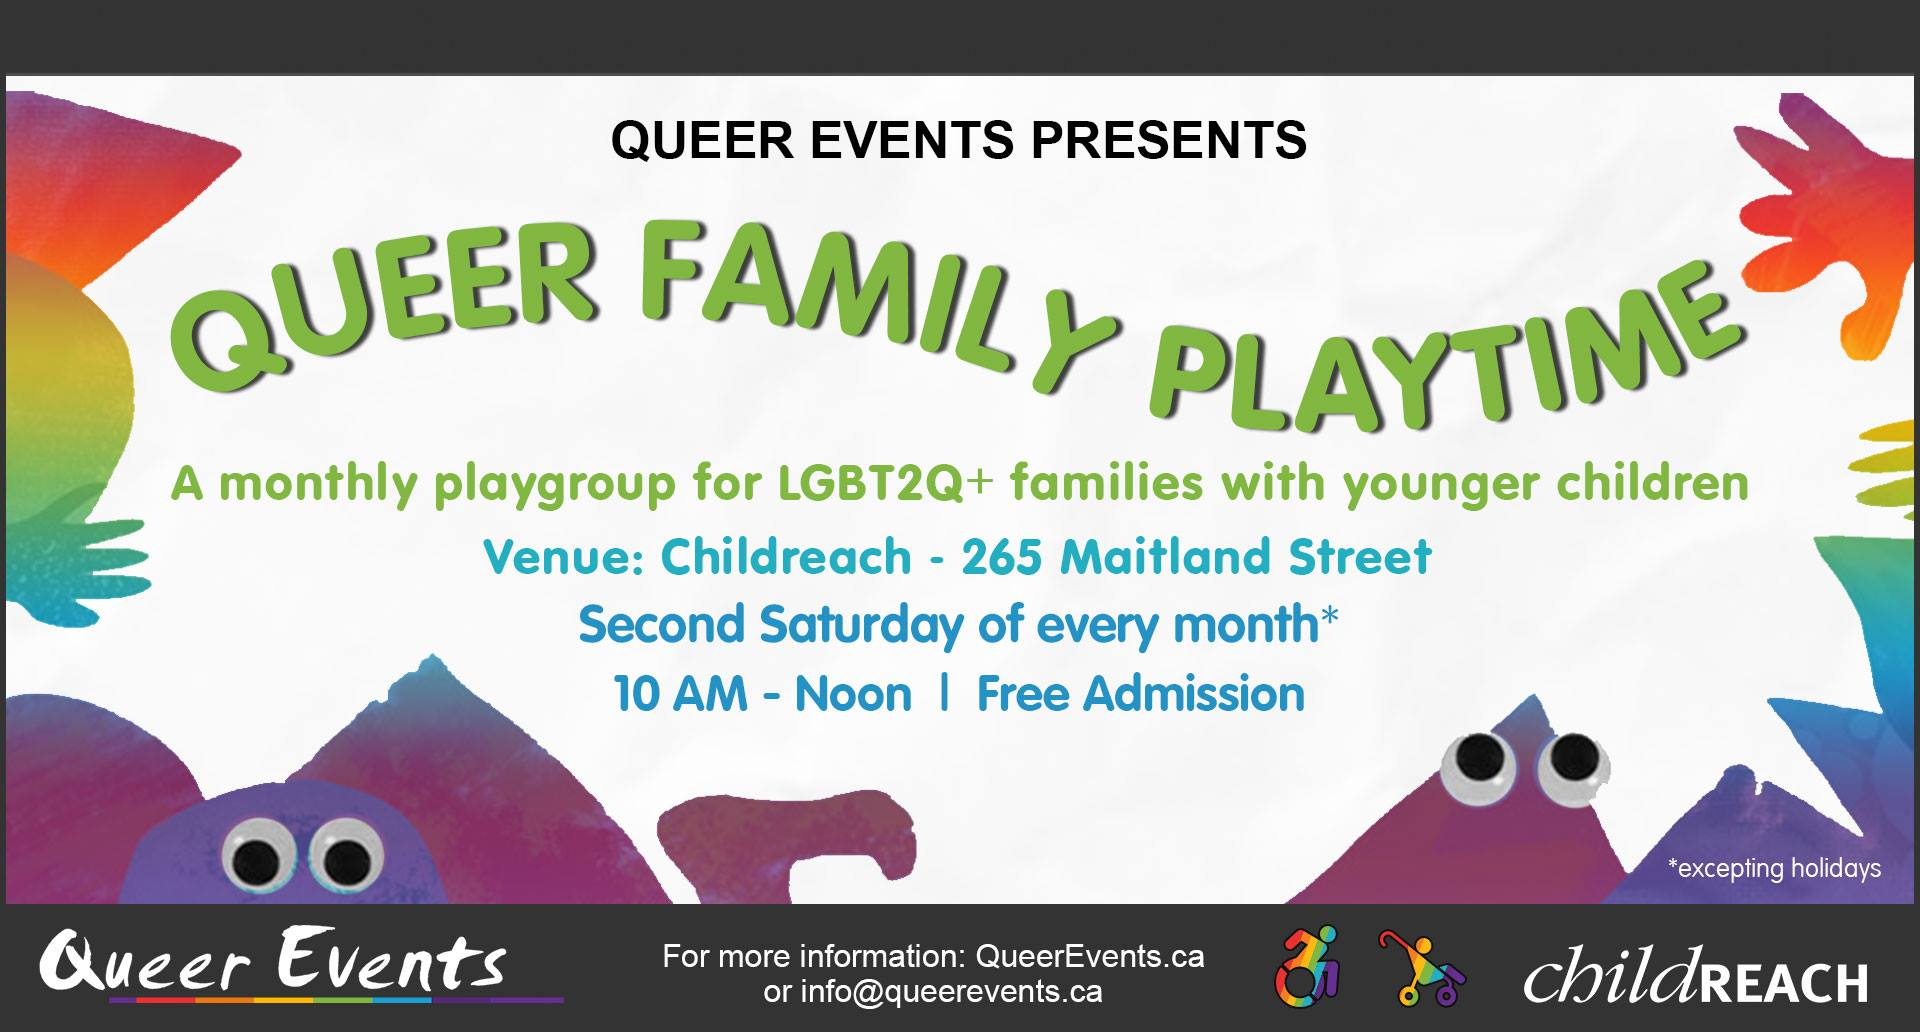 Queer Events presensts Queer Family Playtime